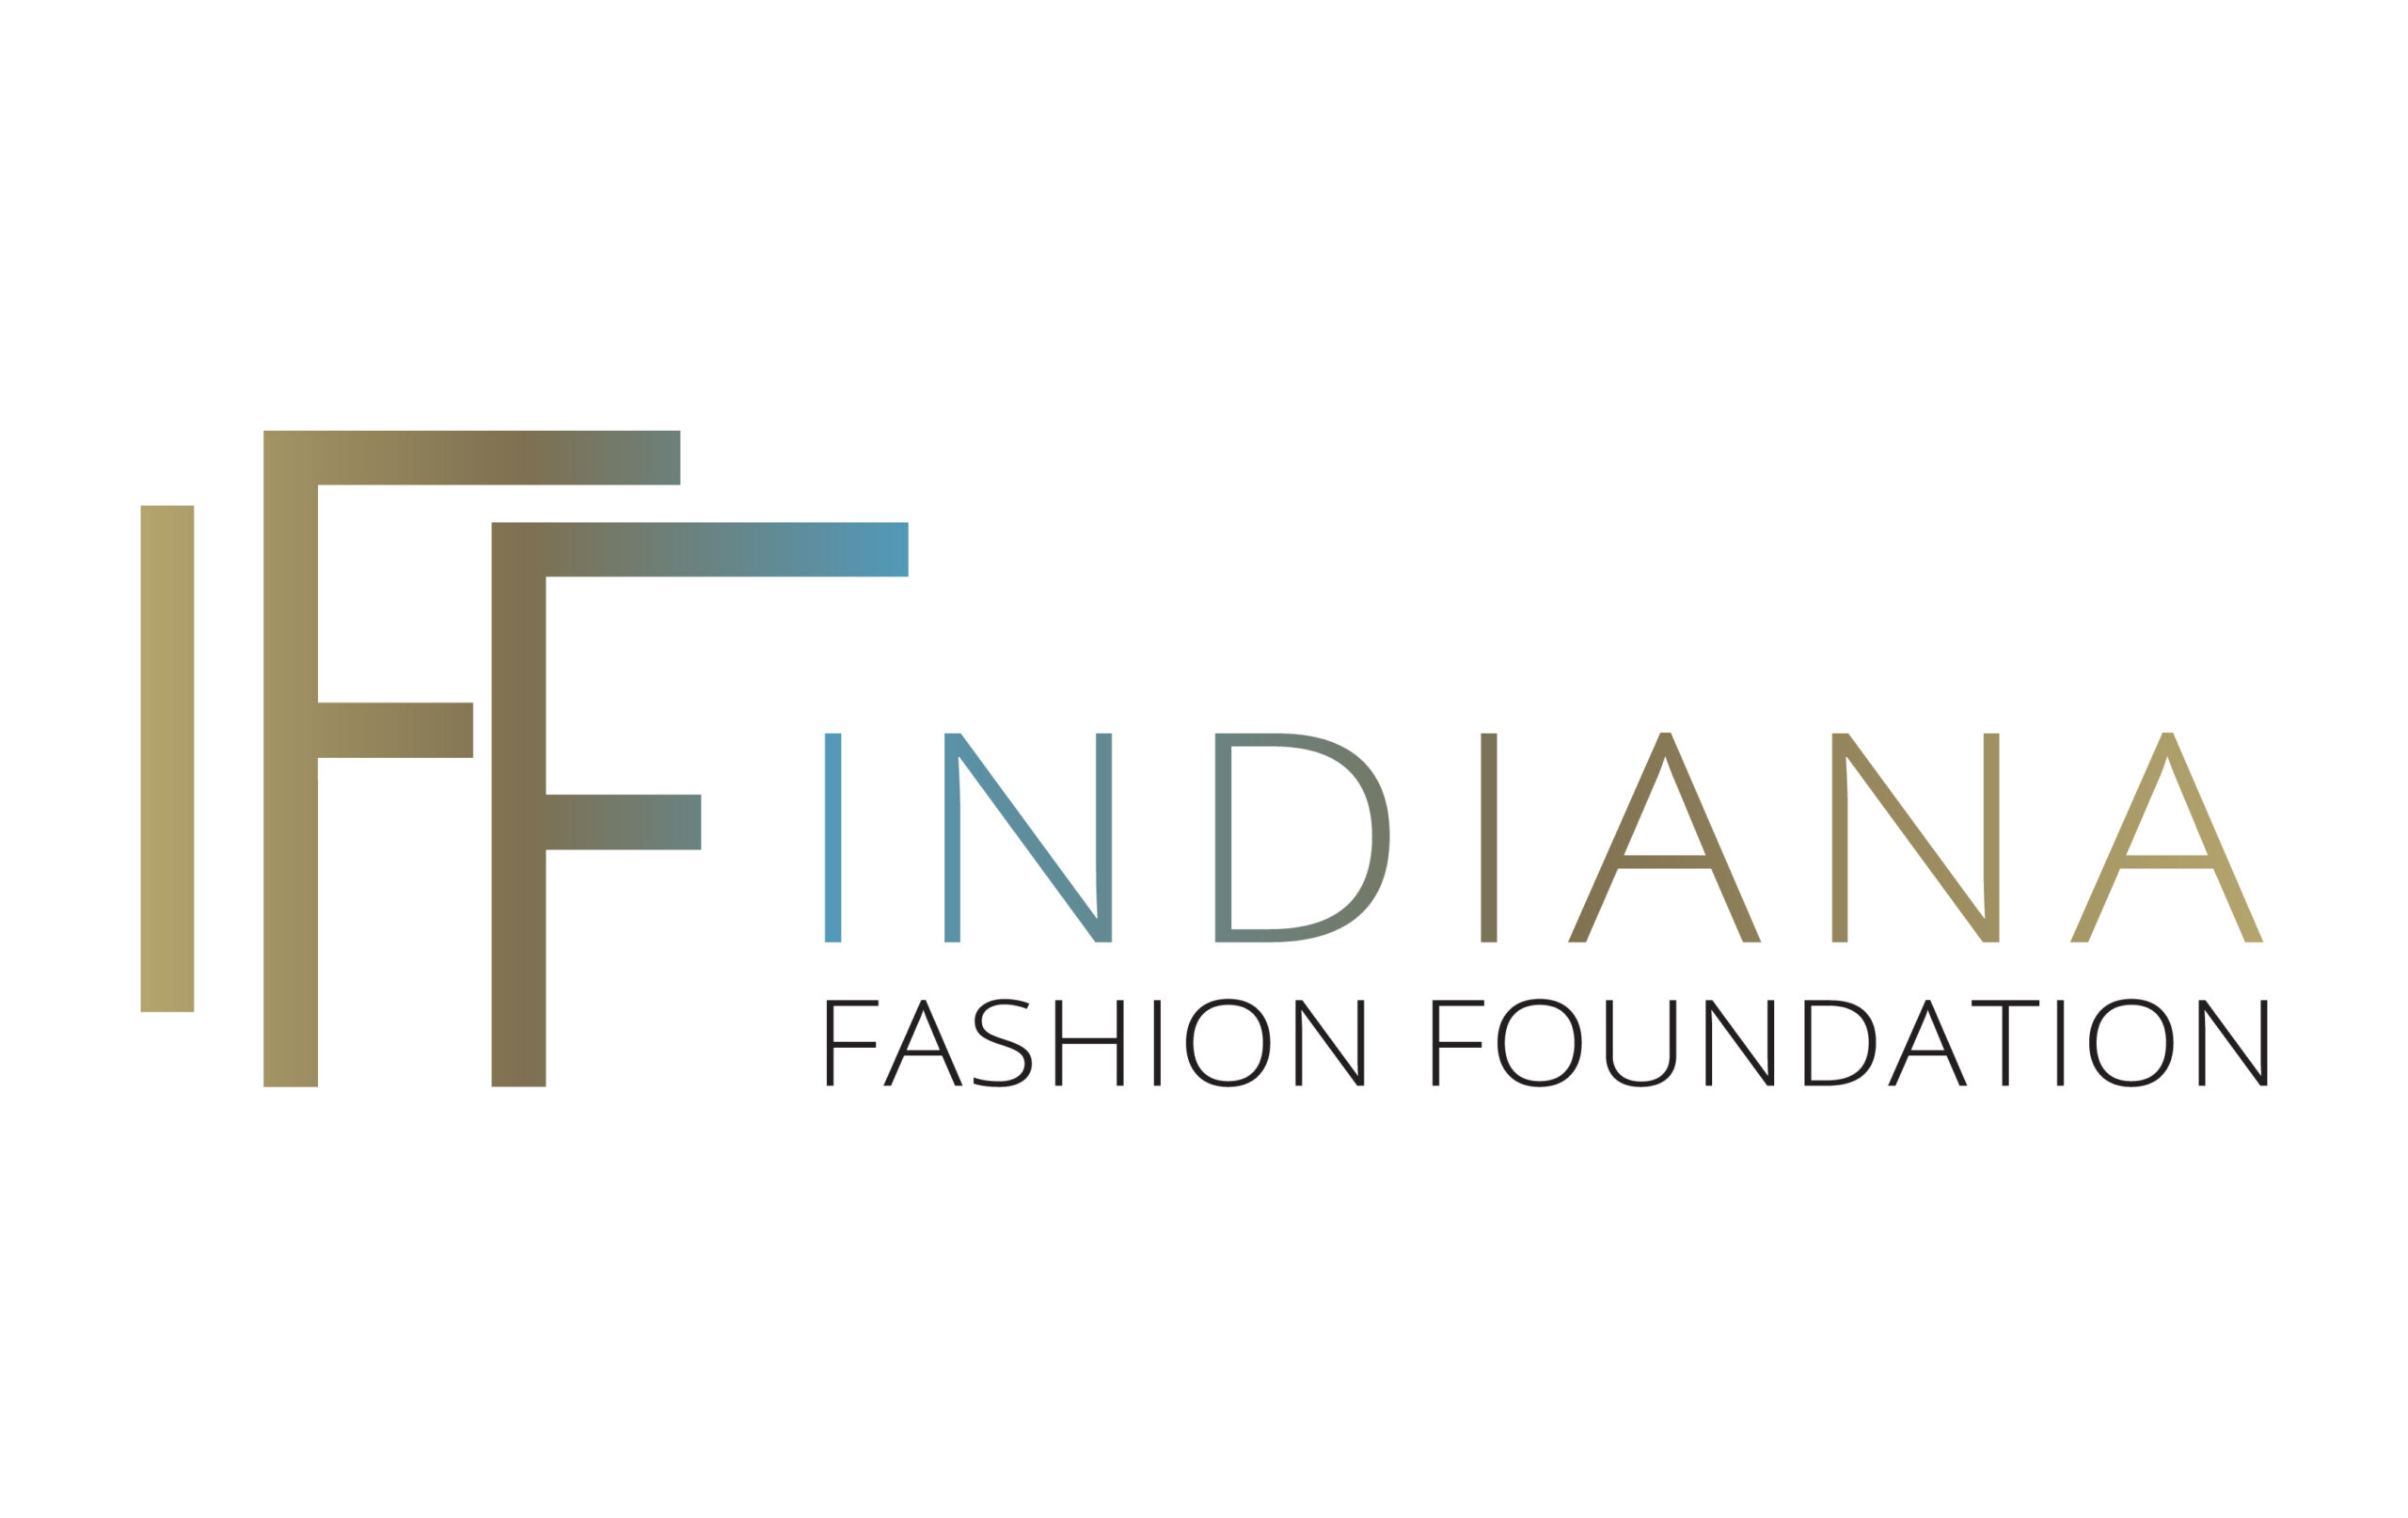 Indiana Fashion Foundation